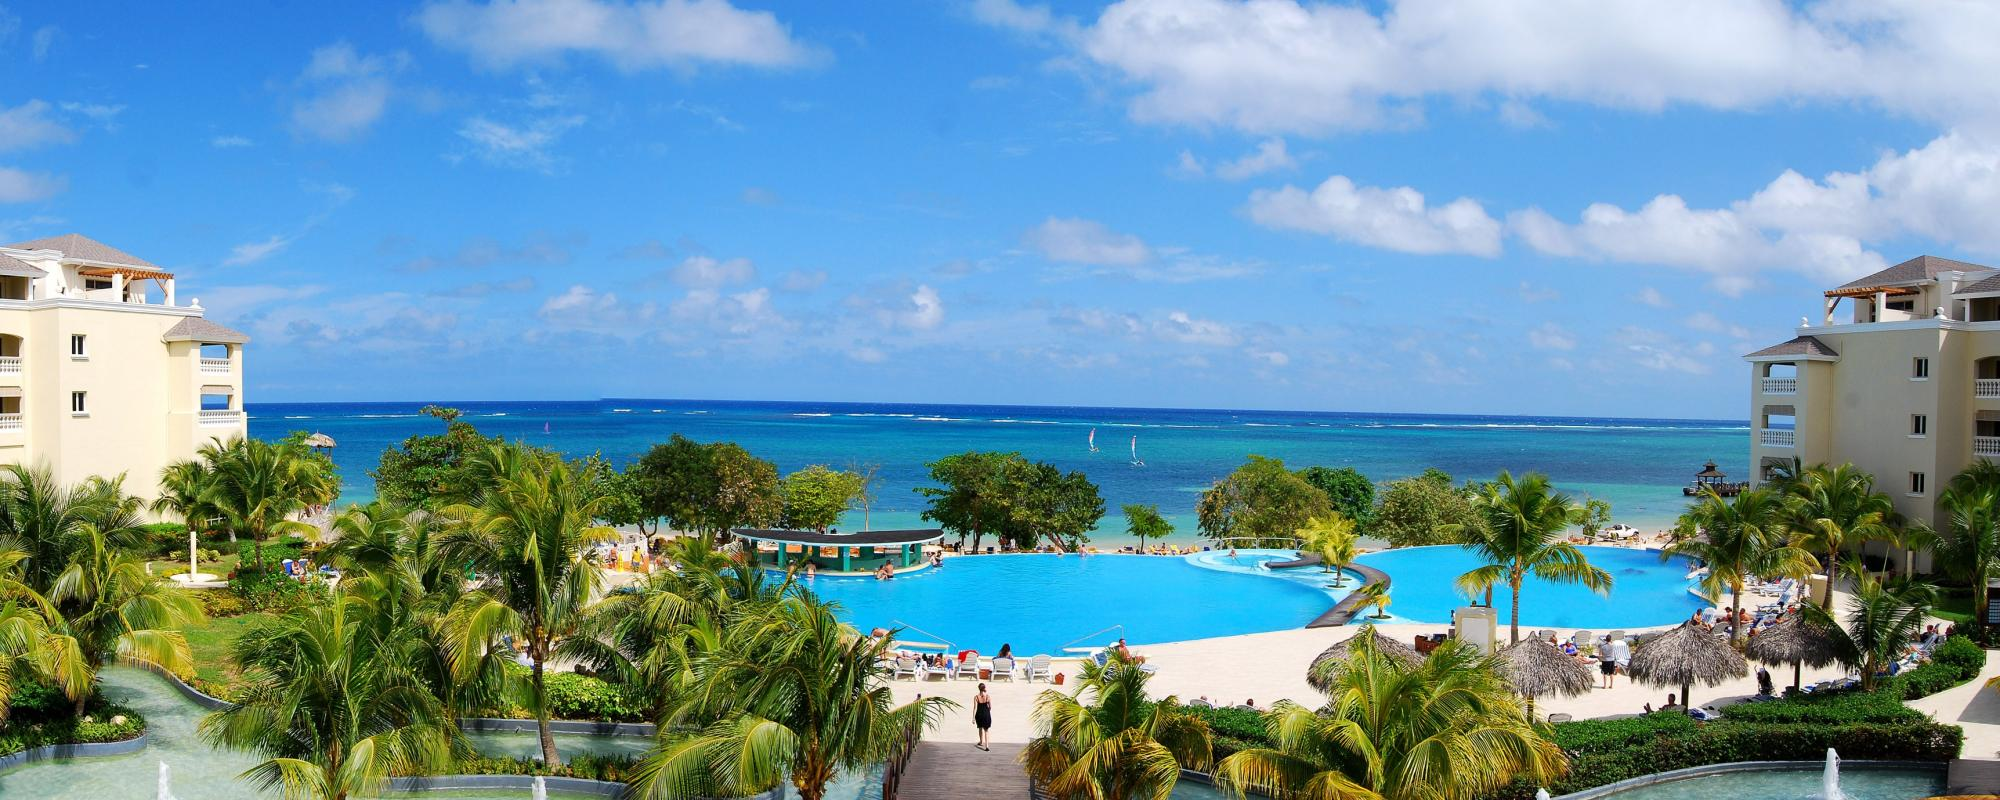 Montego Bay pools and water